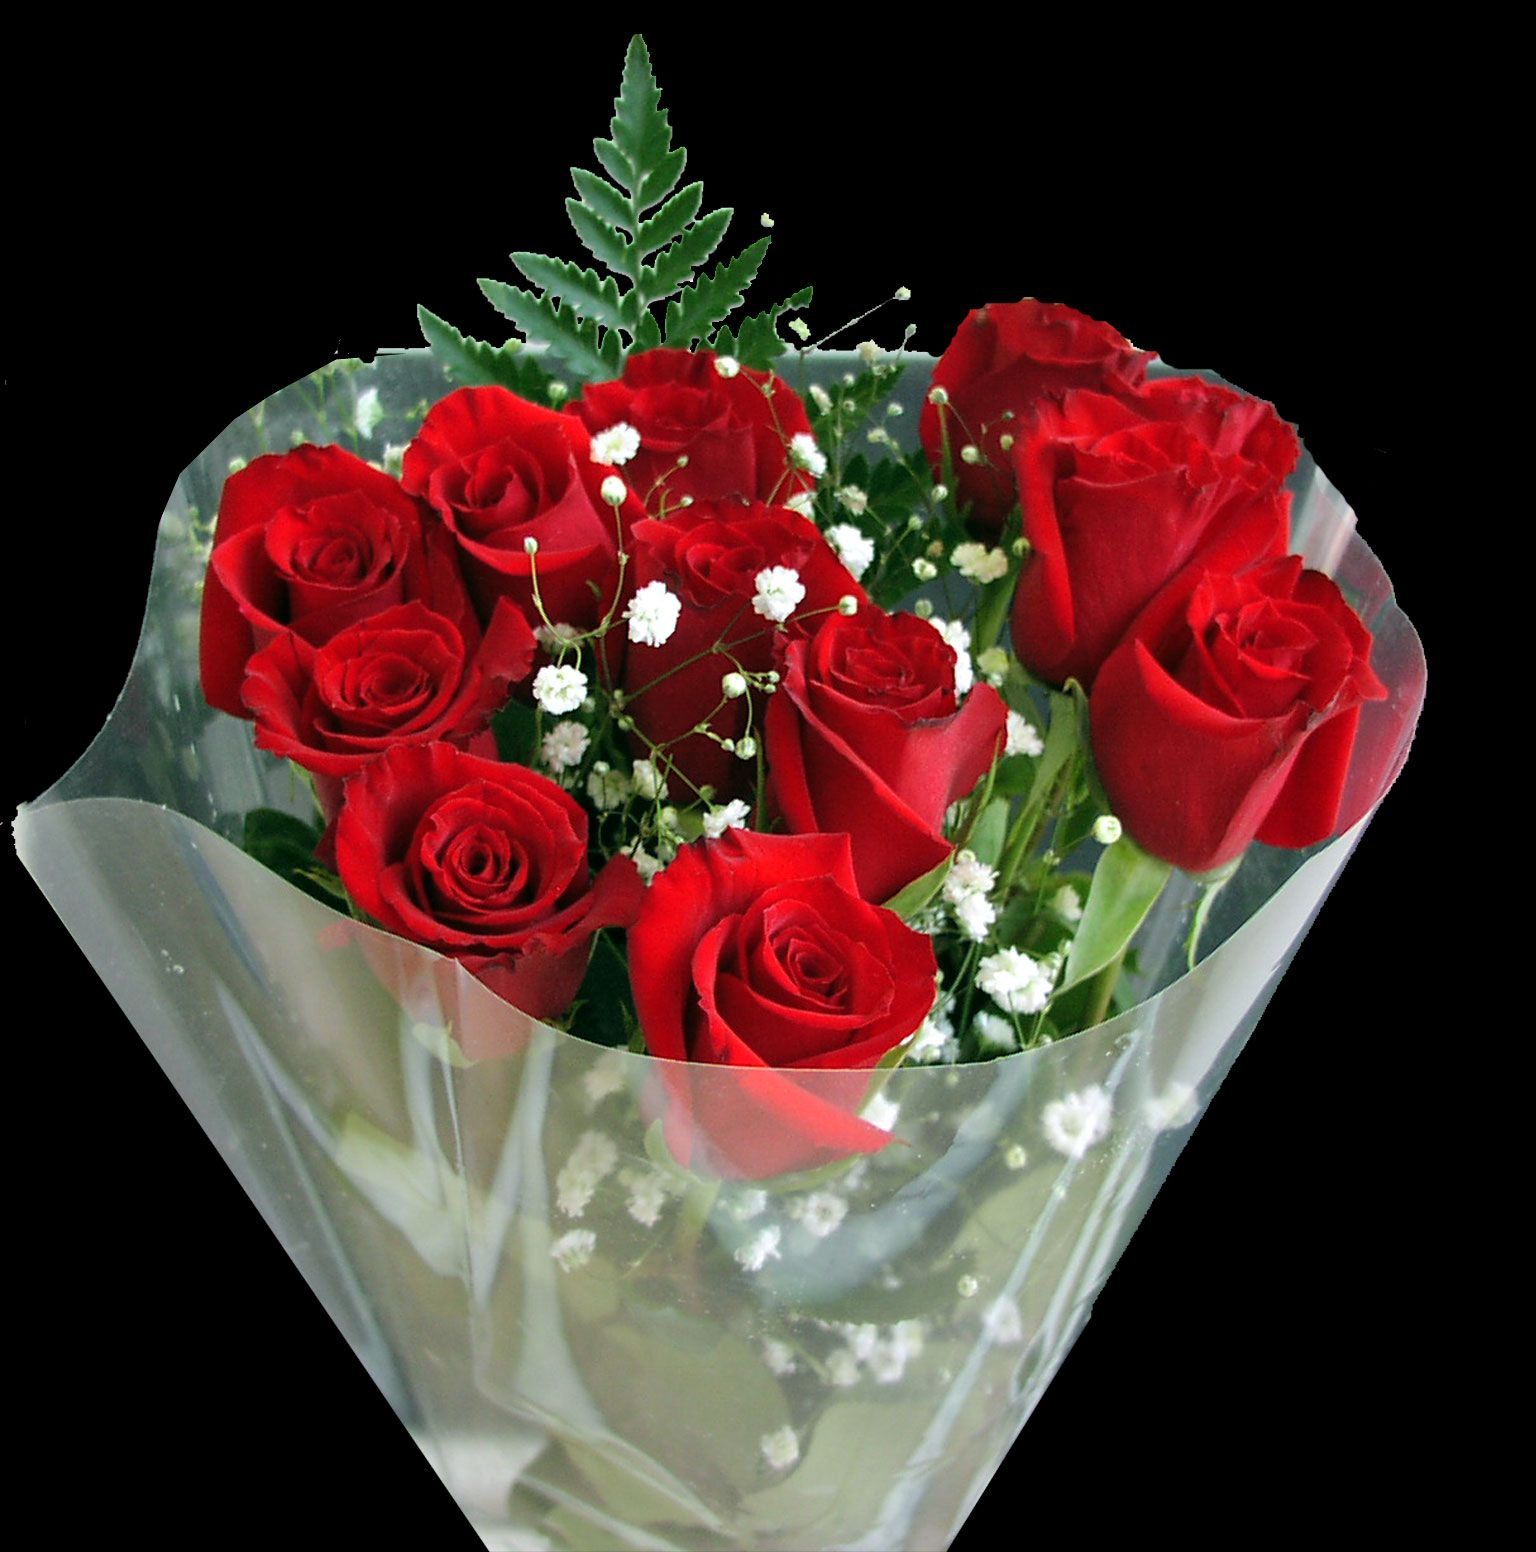 Red Roses Wallpapers Flowers Pinterest Red Roses And Flowers